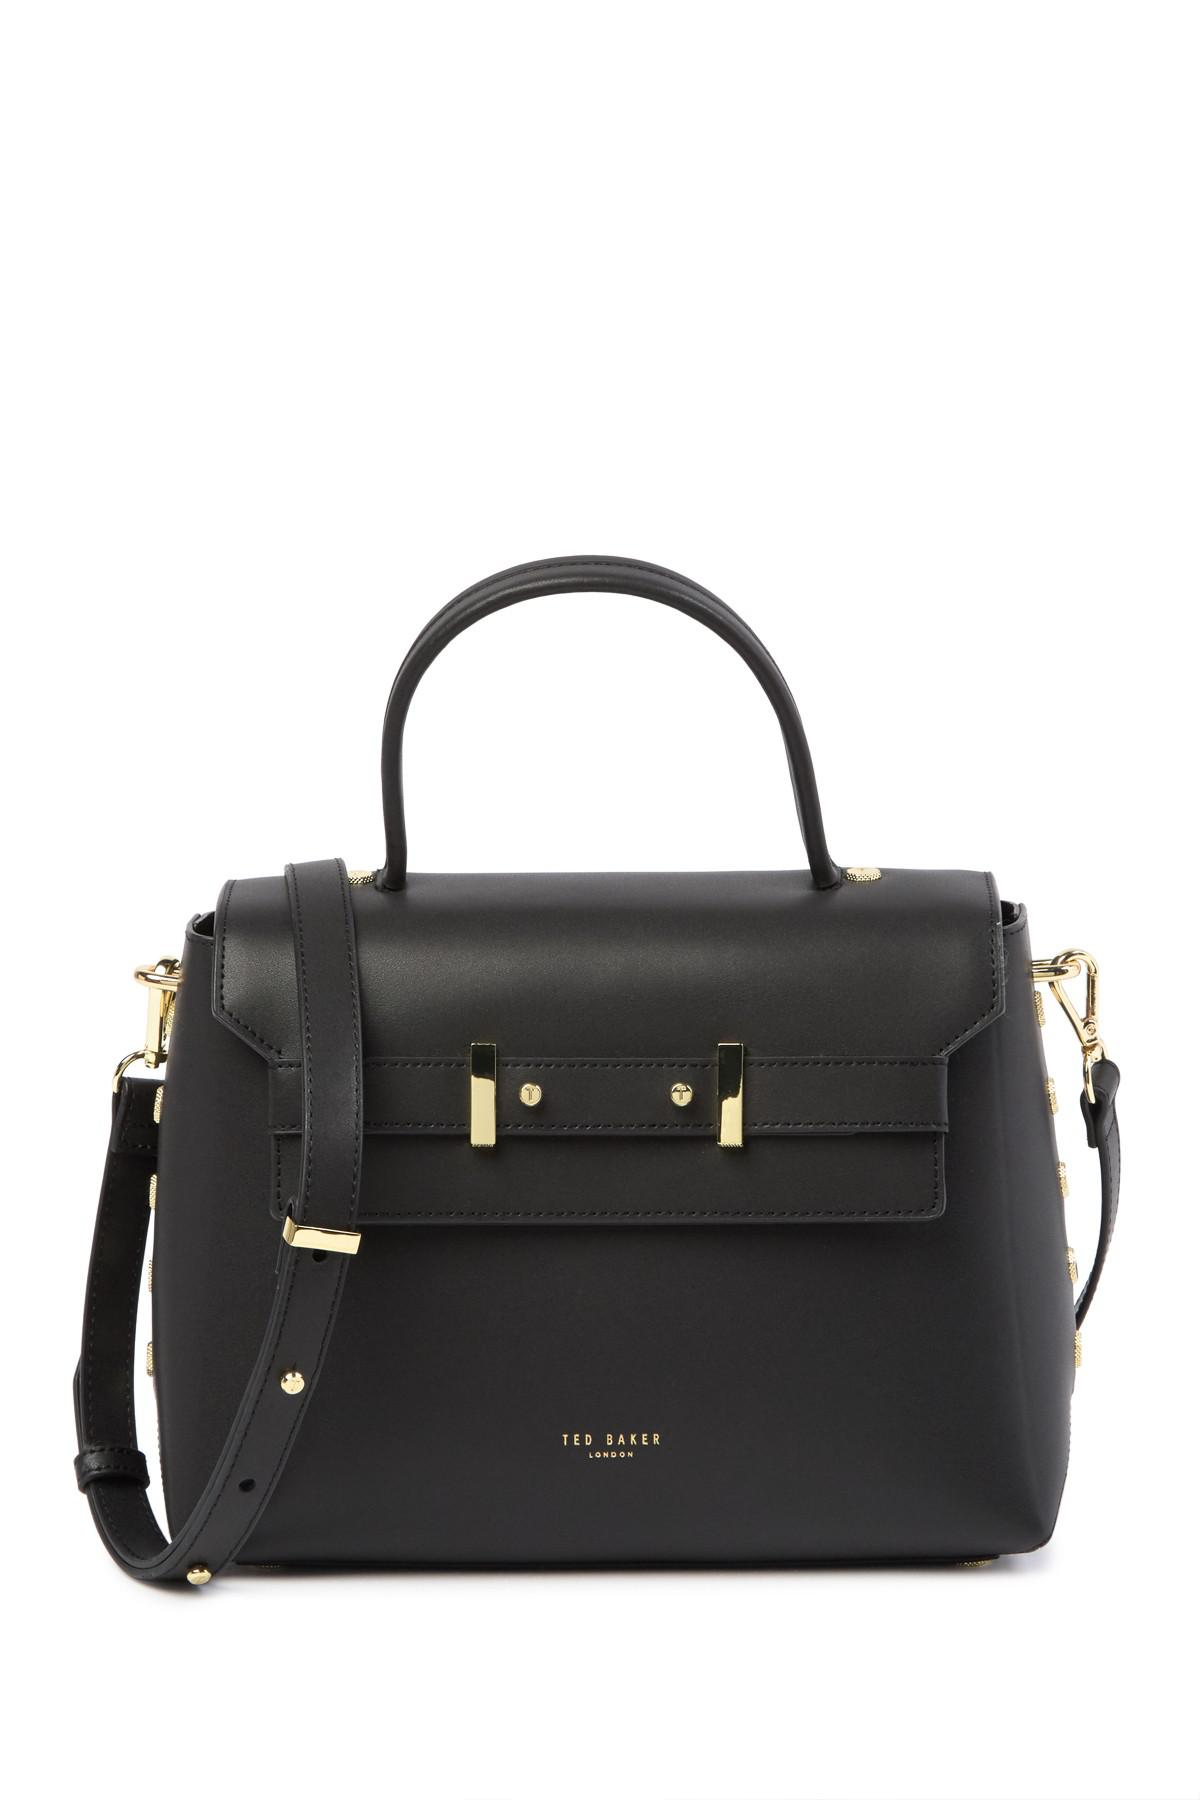 e75112c2620 Ted Baker Studded Edge Leather Lady Bag in Black - Lyst